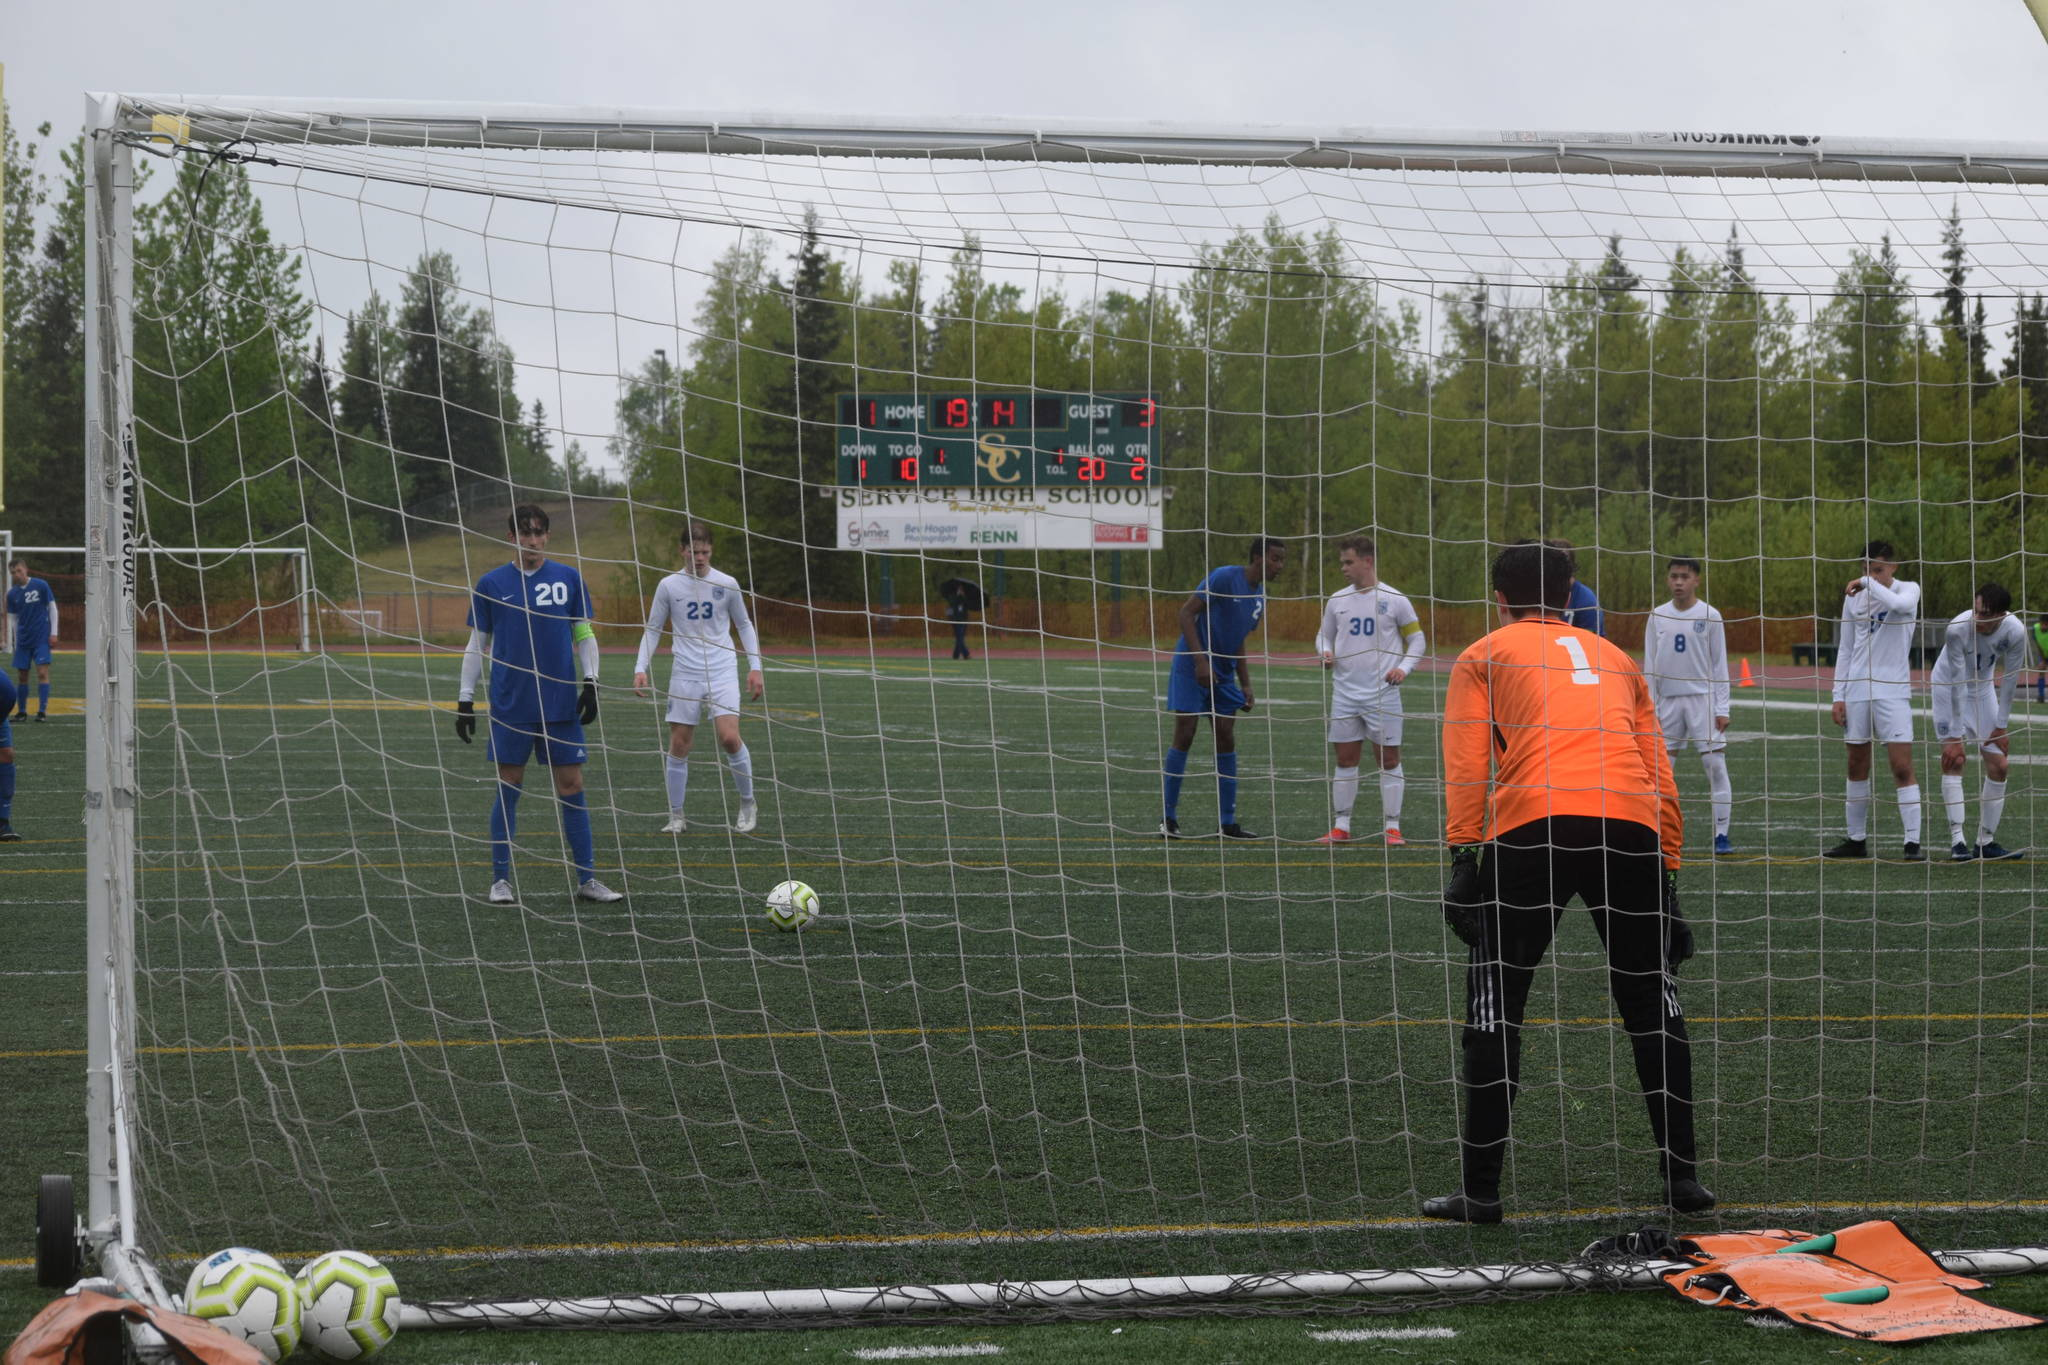 Josh Hieber lines up a penalty kick during the state championship game in Anchorage, Alaska on Saturday, May 29, 2021. (Camille Botello / Peninsula Clarion)